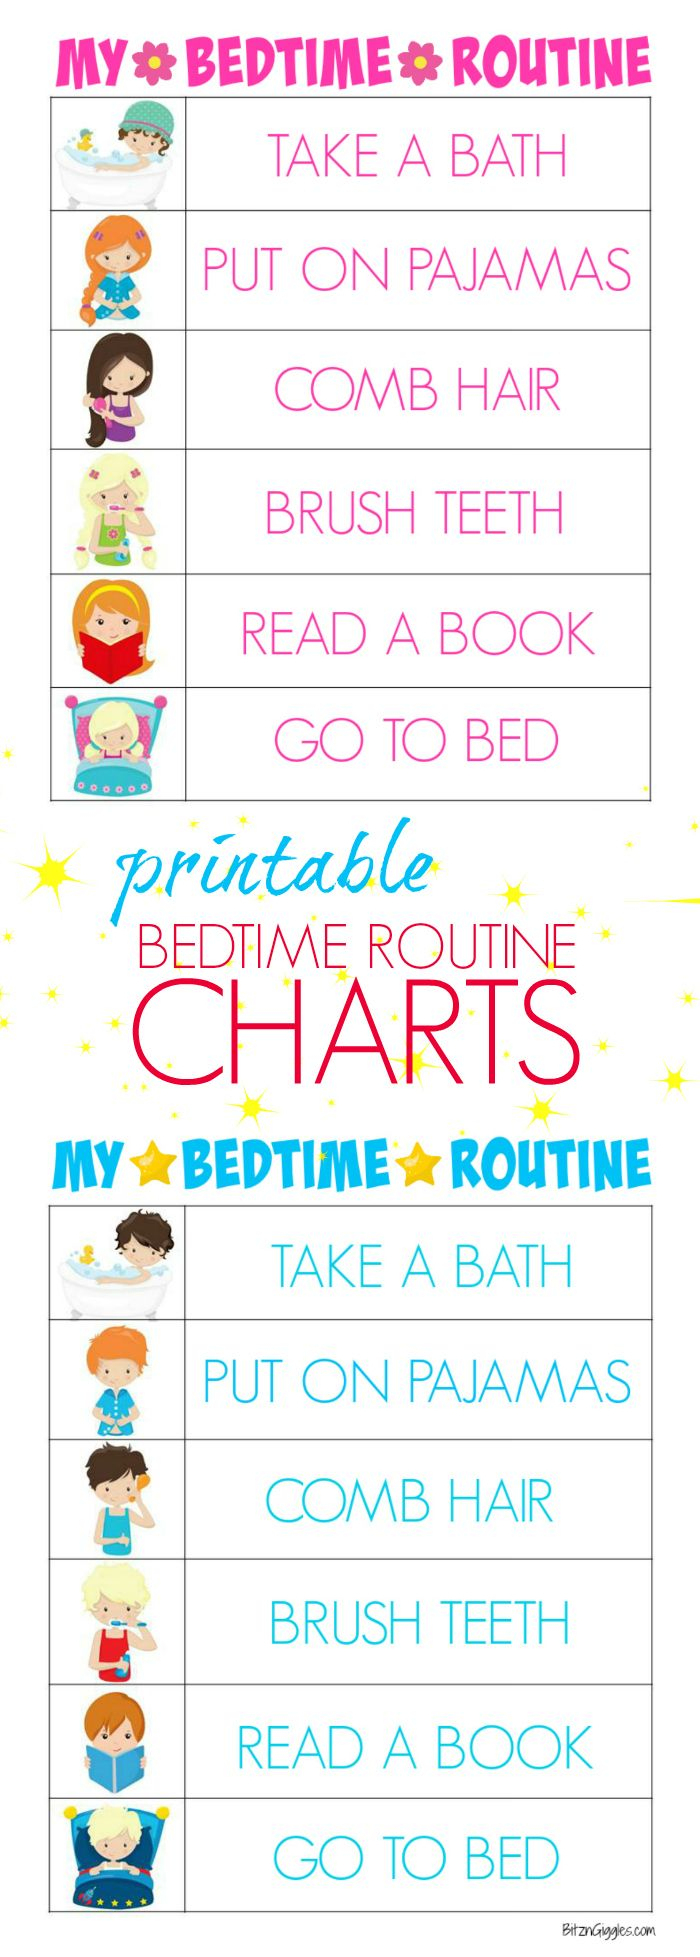 Printable Bedtime Routine Charts - Free Printable Kids Bedtime - Children's Routine Charts Free Printable